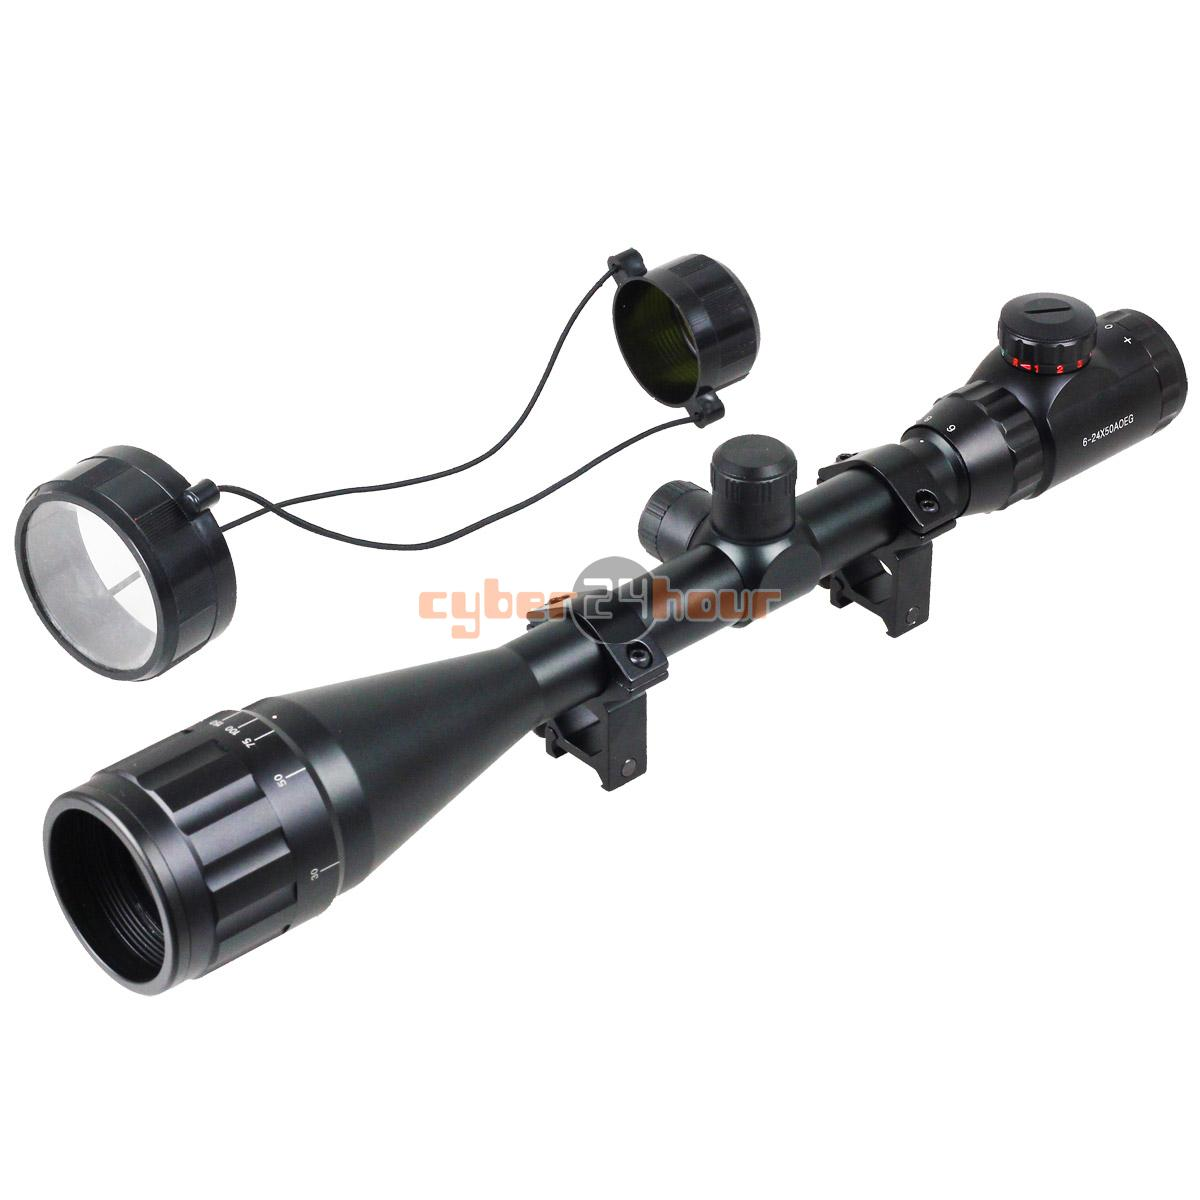 NEW Tactical 6-24x50 AOEG Red Green Mil-dot Illuminated Sight Rifle Scope With a Sunshade Fits For 20mm Rail Mount 3 10x42 red laser m9b tactical rifle scope red green mil dot reticle with side mounted red laser guaranteed 100%